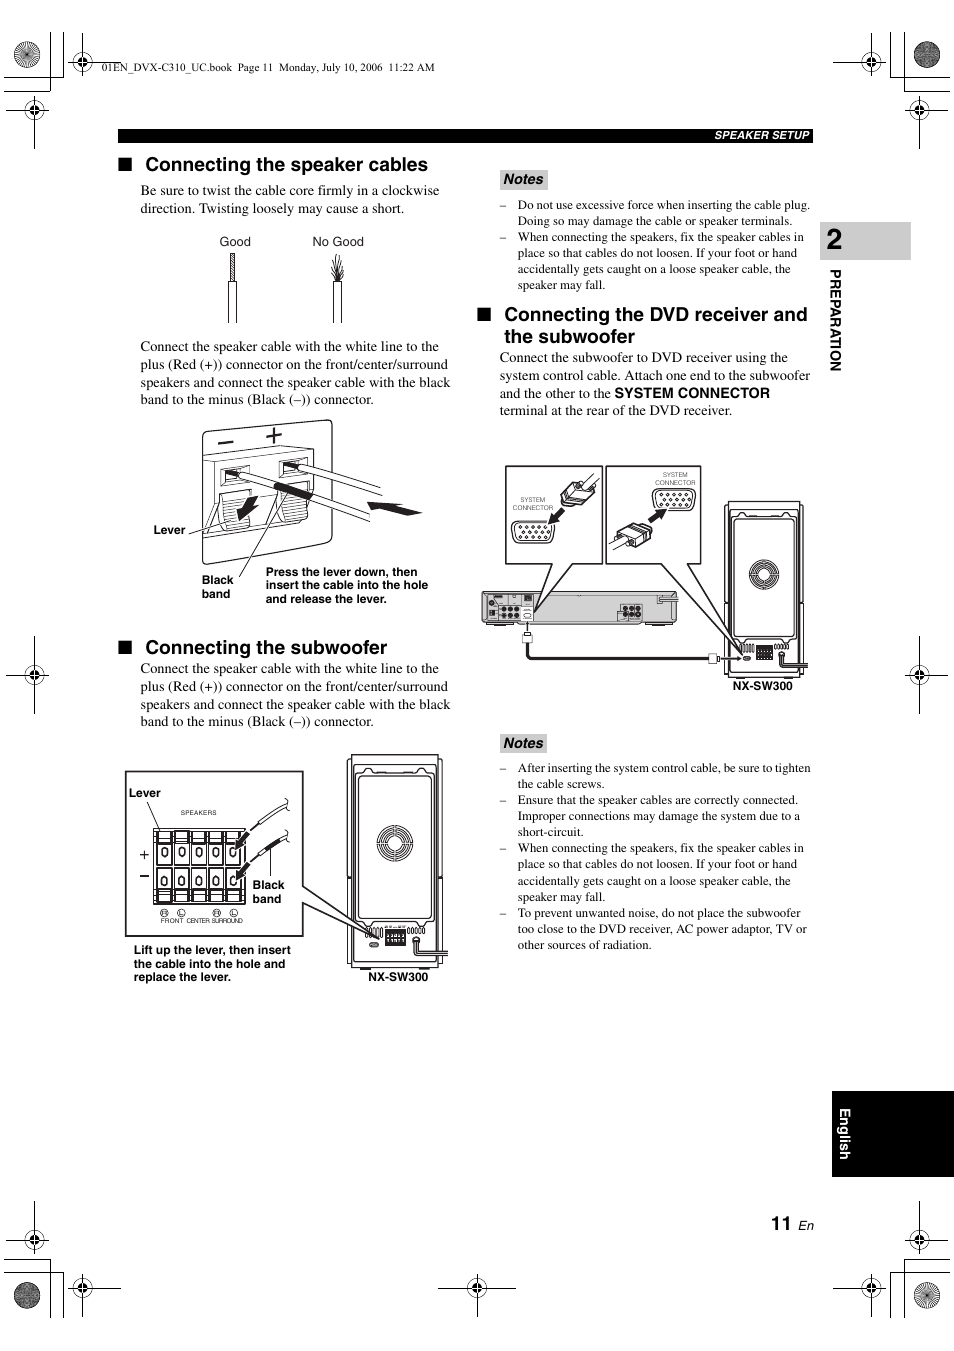 Connecting the fm/am antennas | yamaha dvx-c310sw user manual.